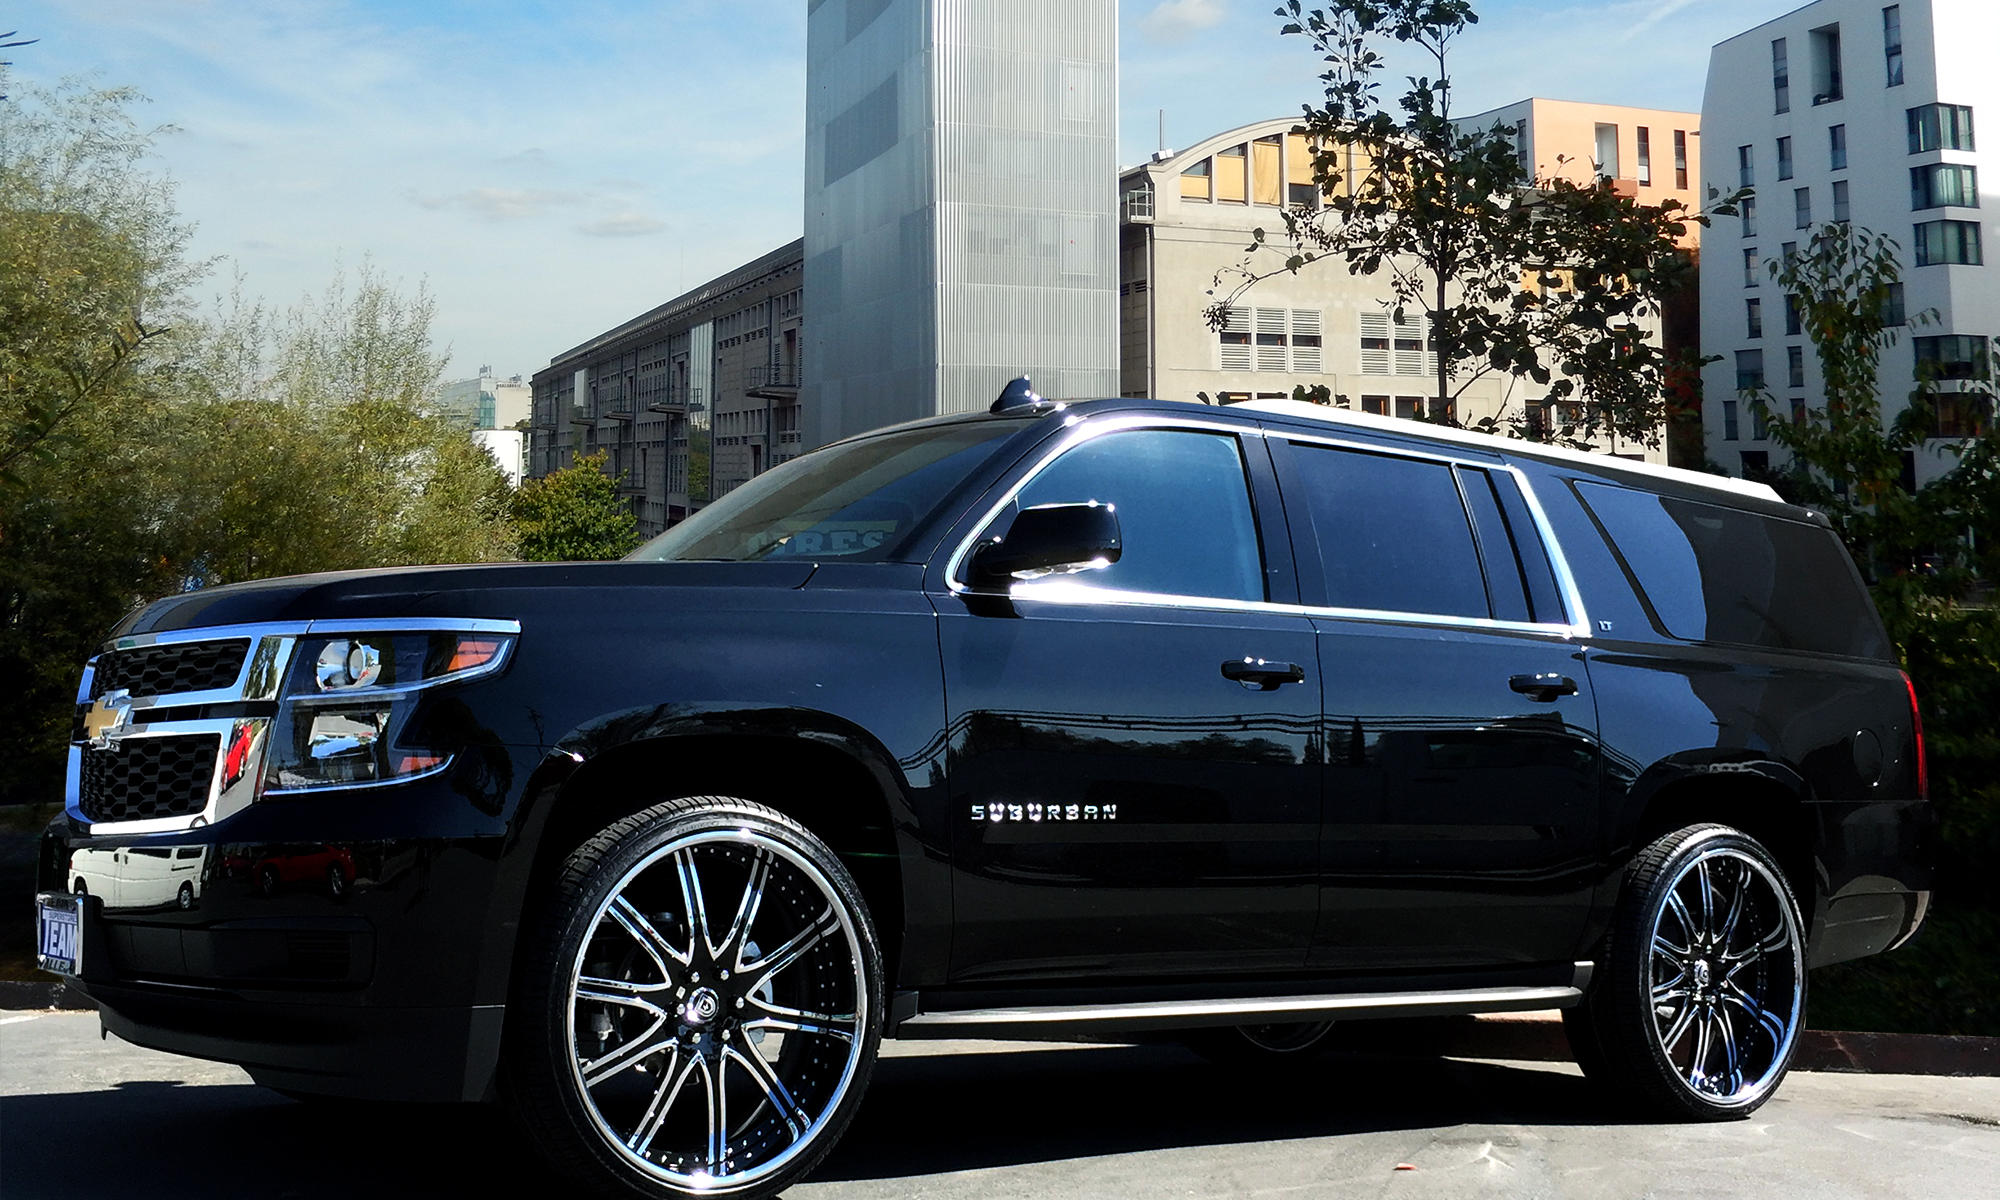 2015 Chevy Suburban on LF-709